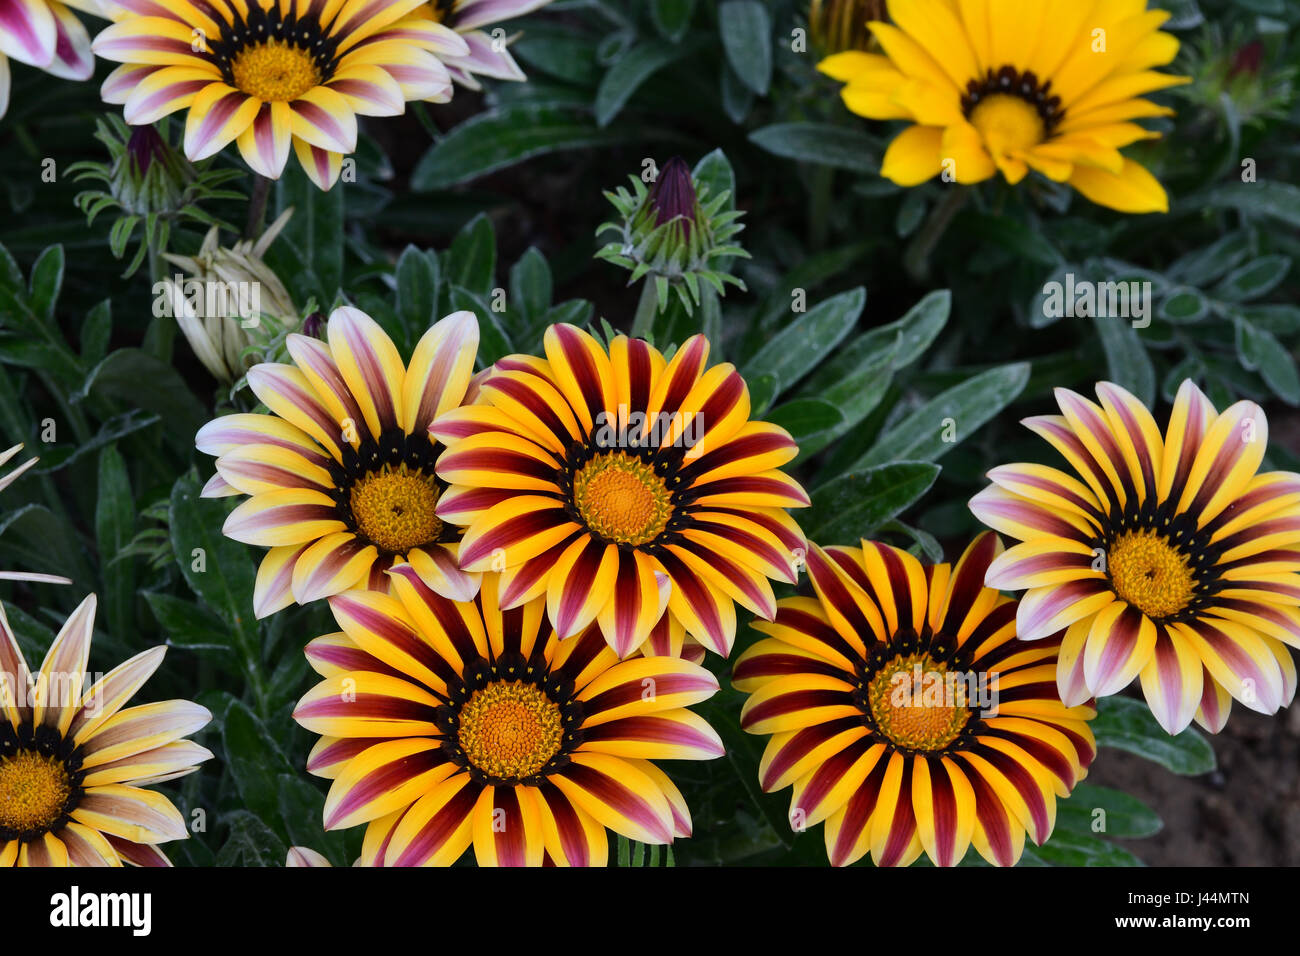 Bed of multi colored flowers - Stock Image